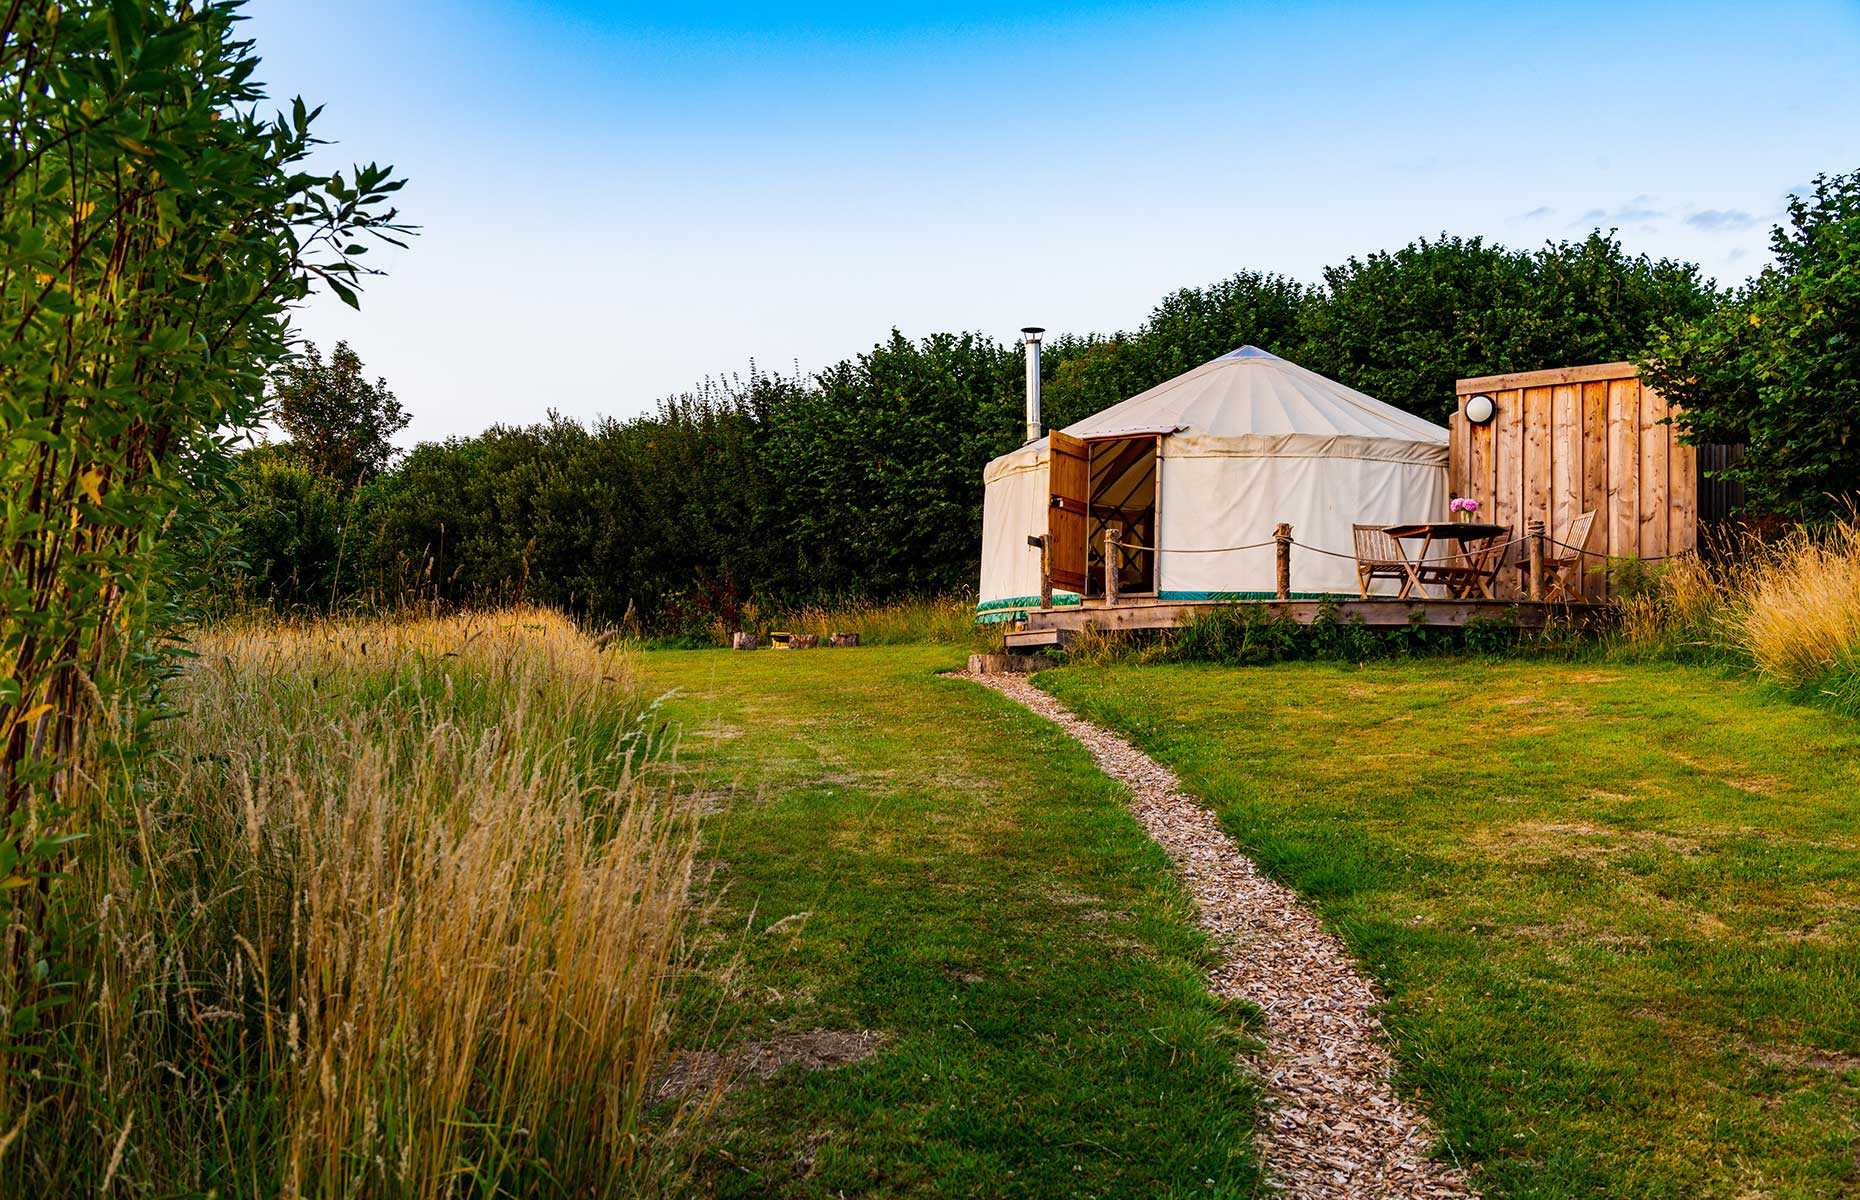 The exterior of a glamping yurt at Walnut Farm, Dorset